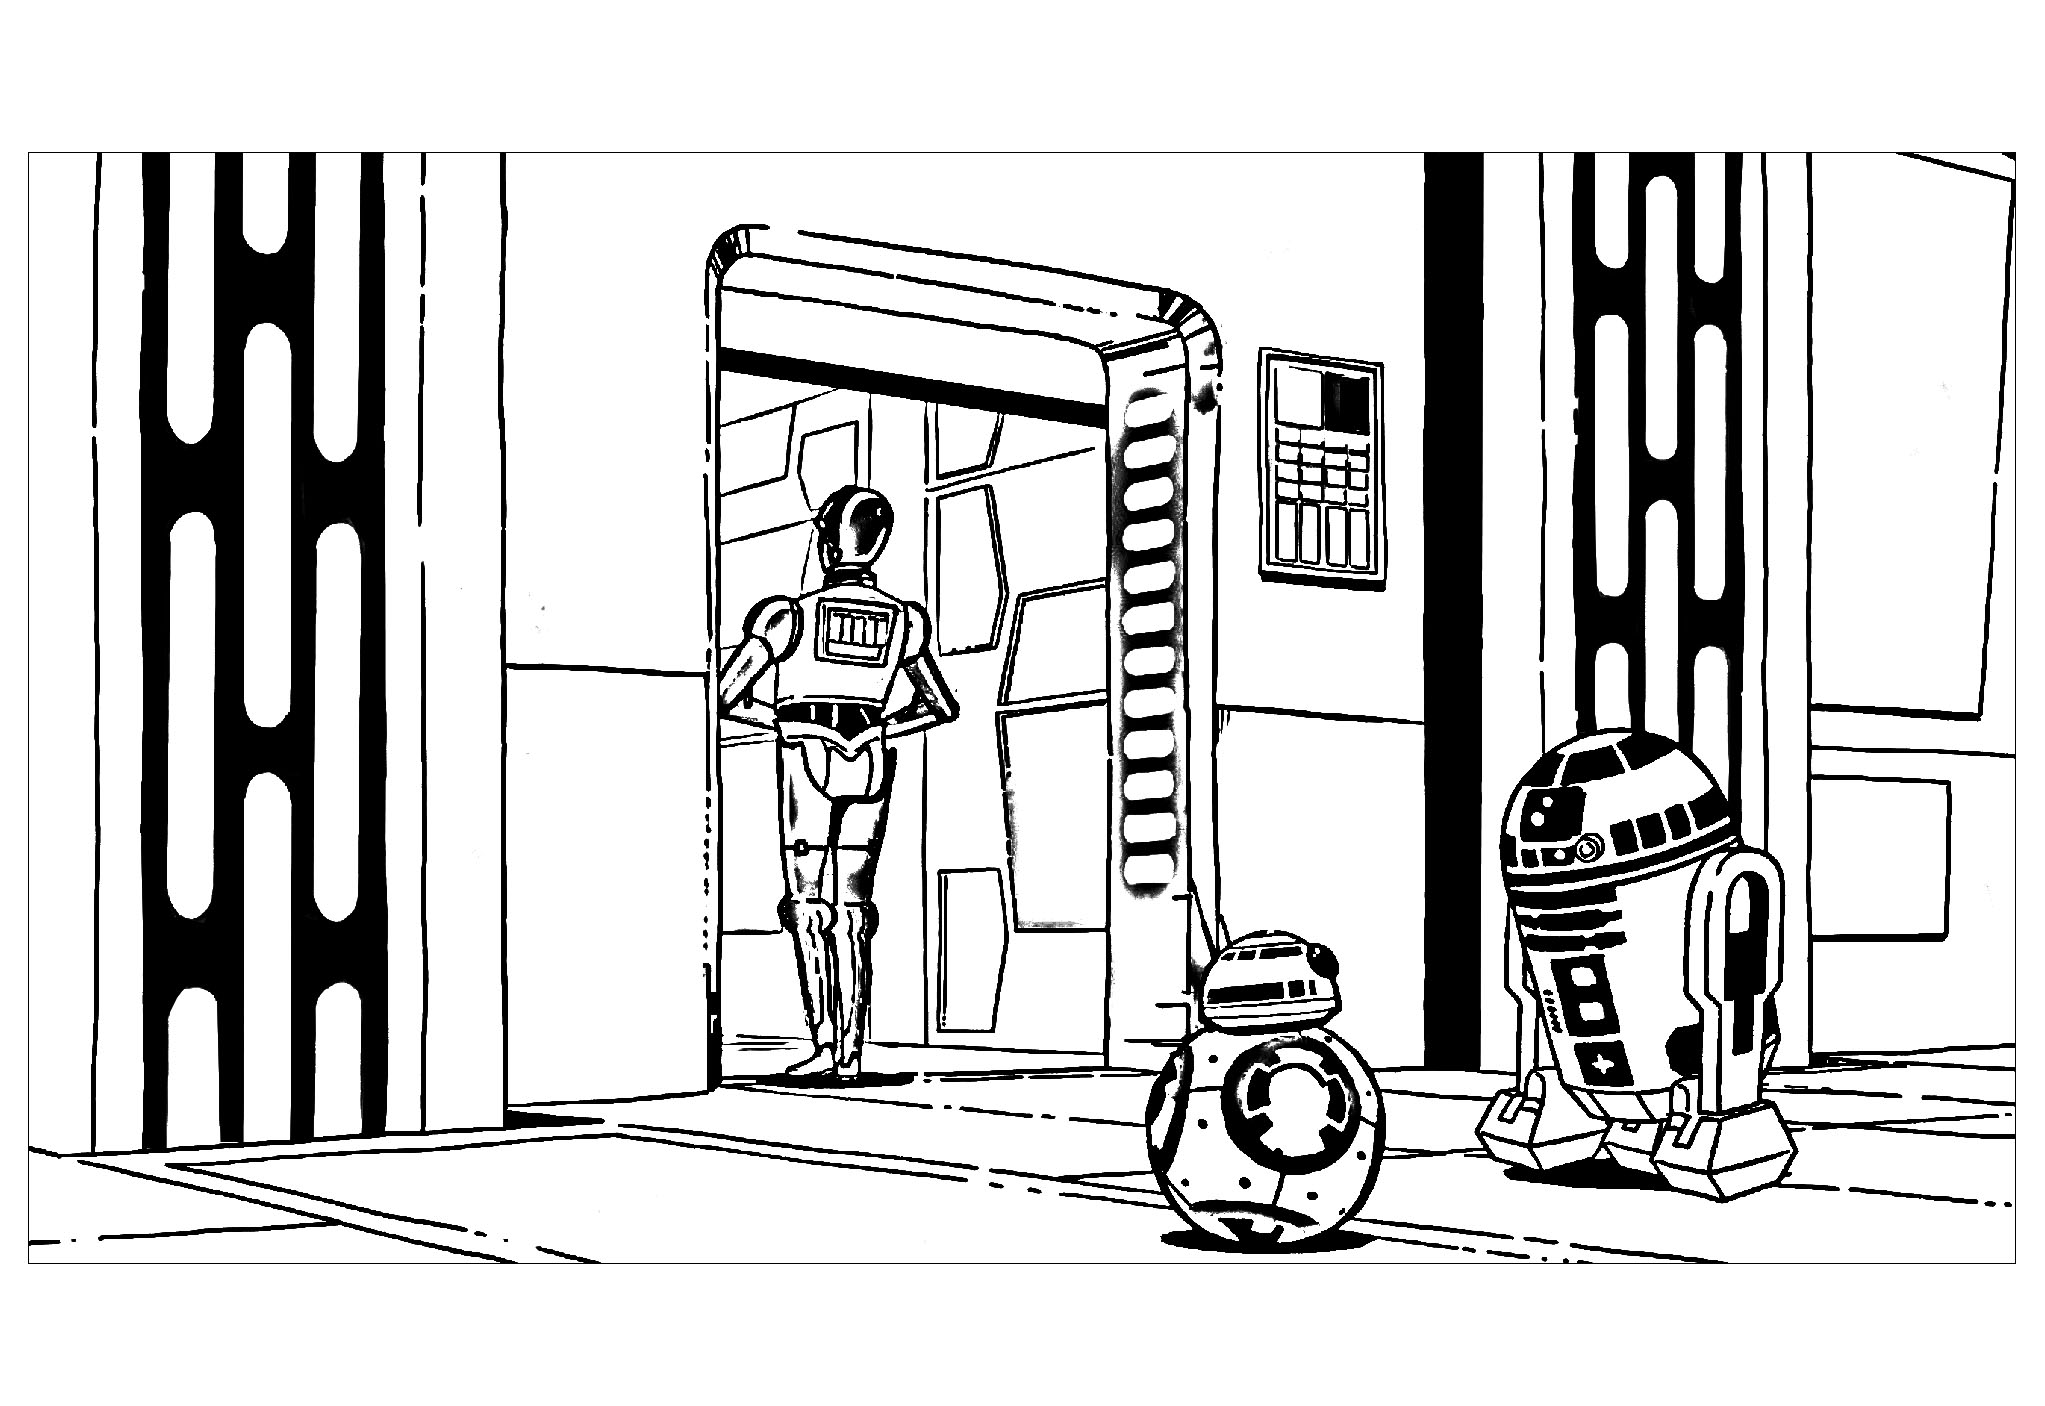 Star Wars coloring page with few details for kids